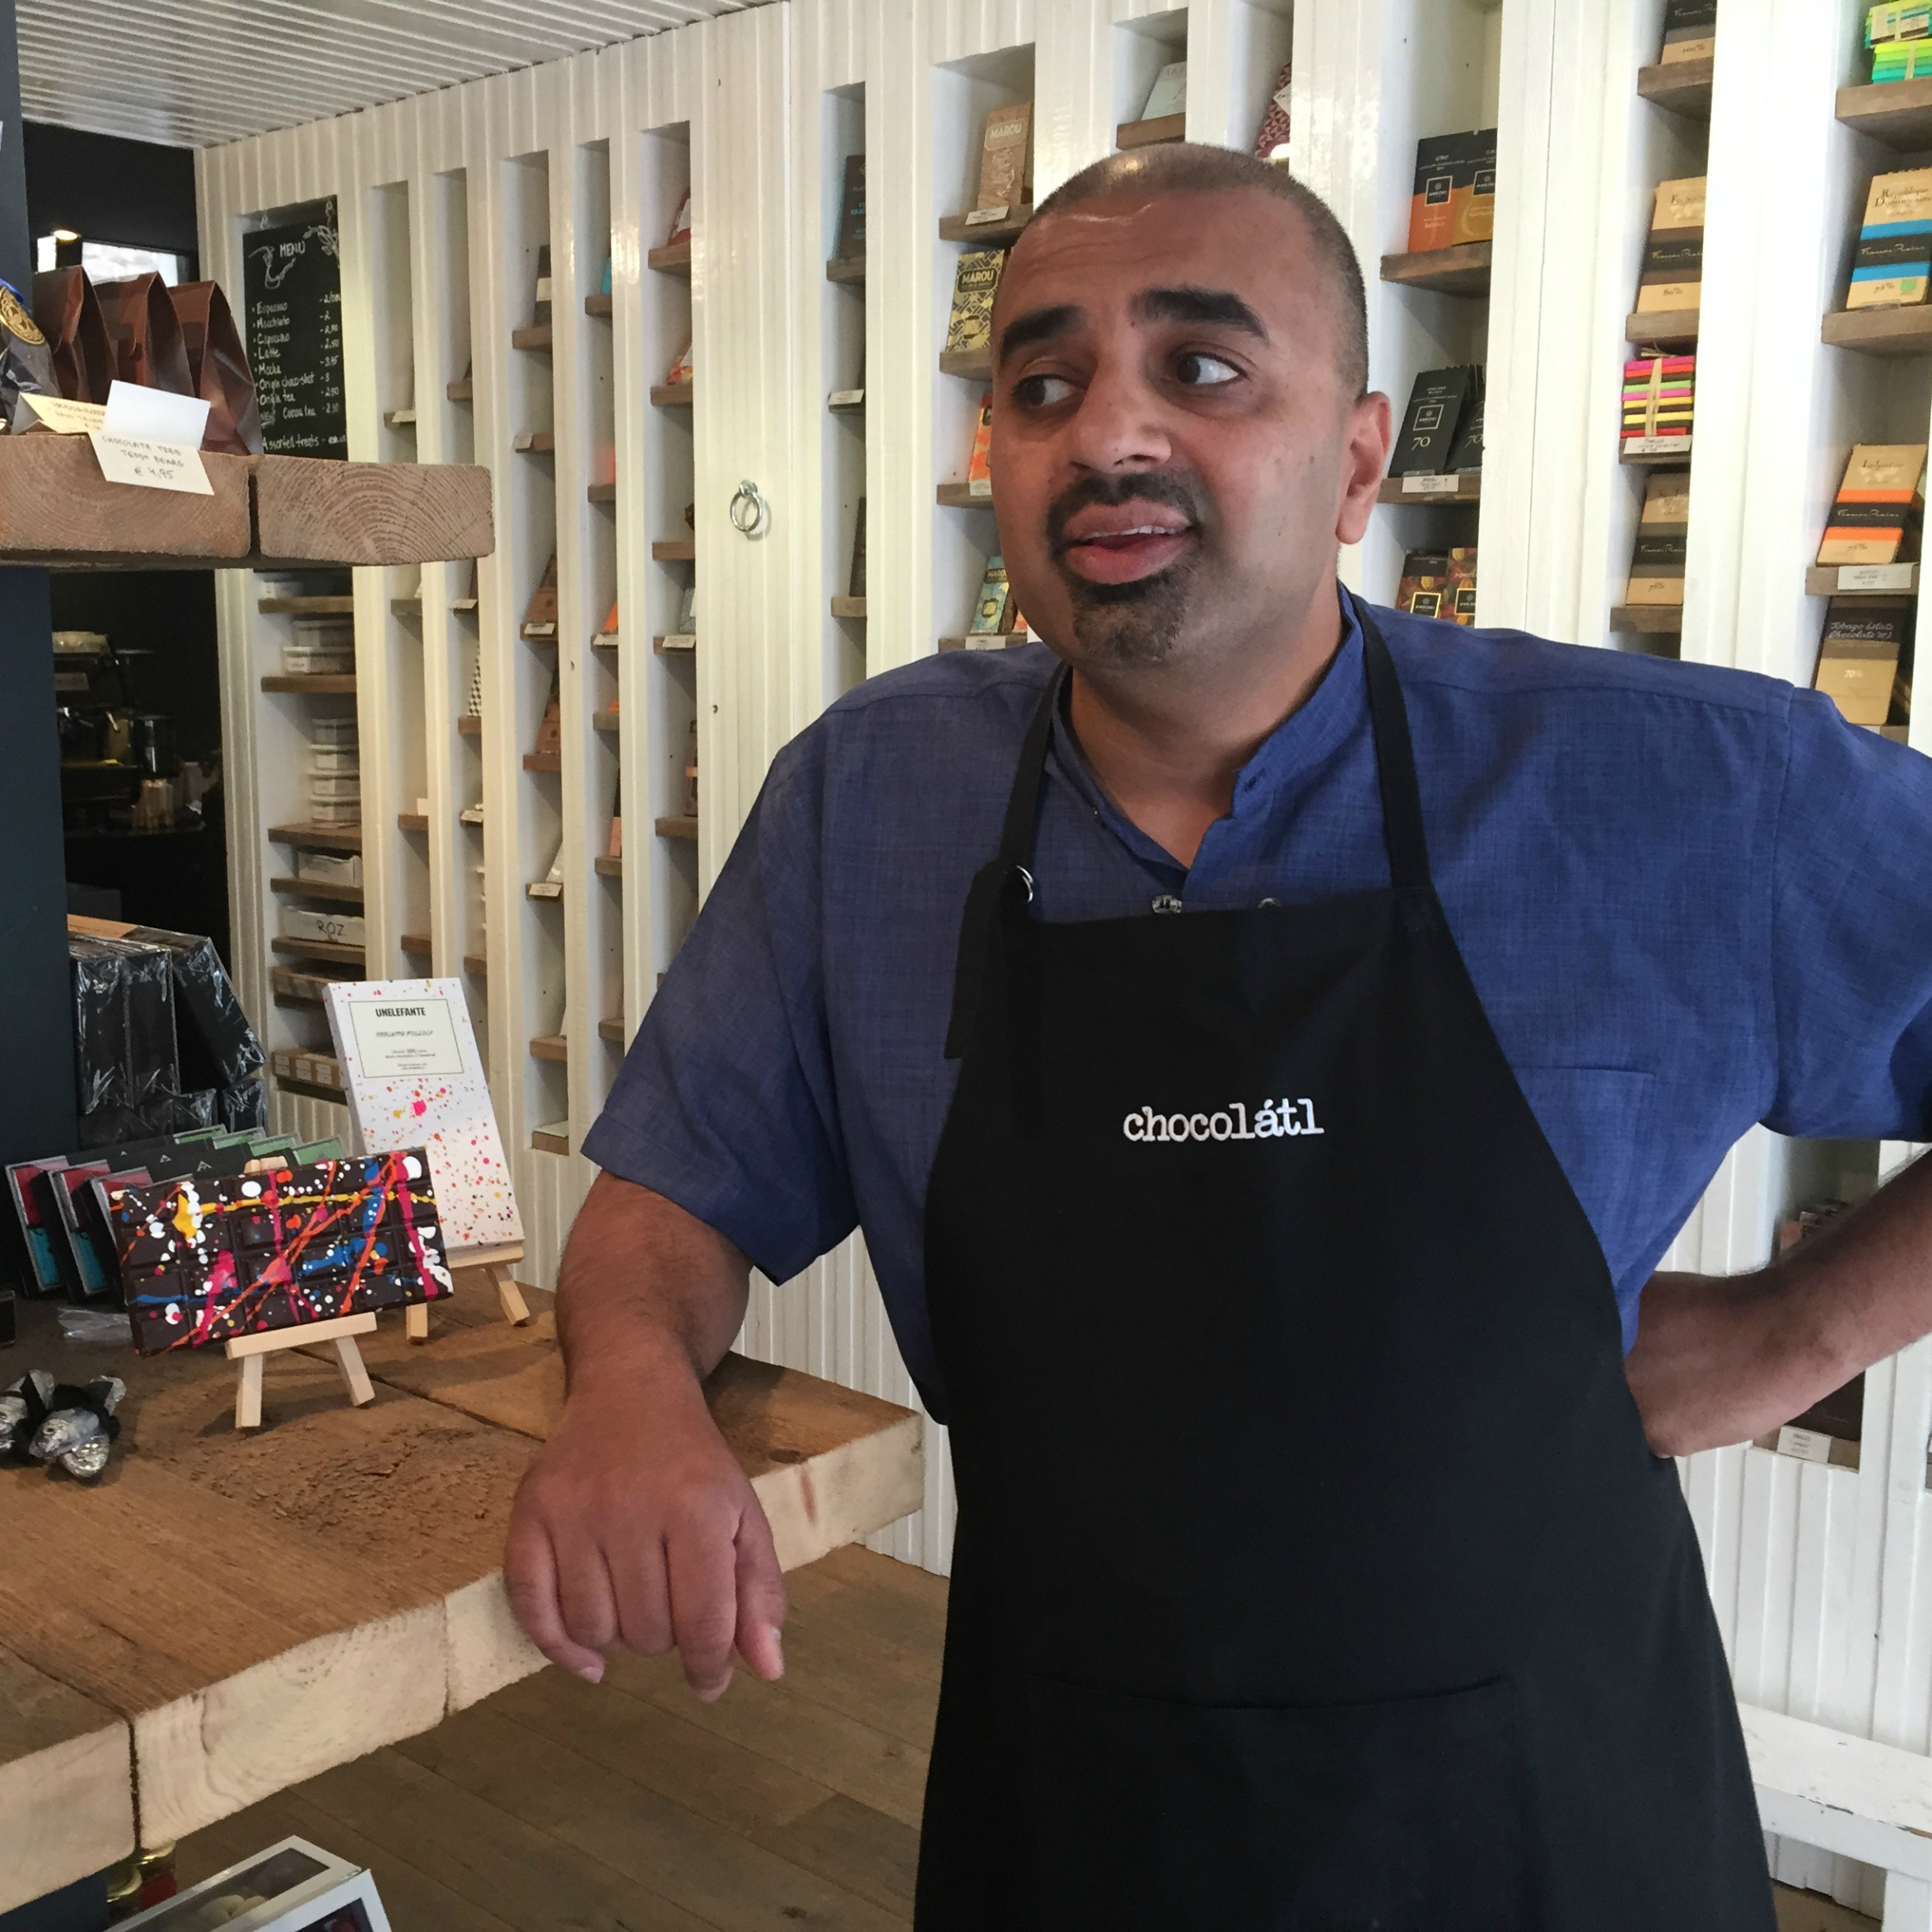 adil of chocolatl amsterdam